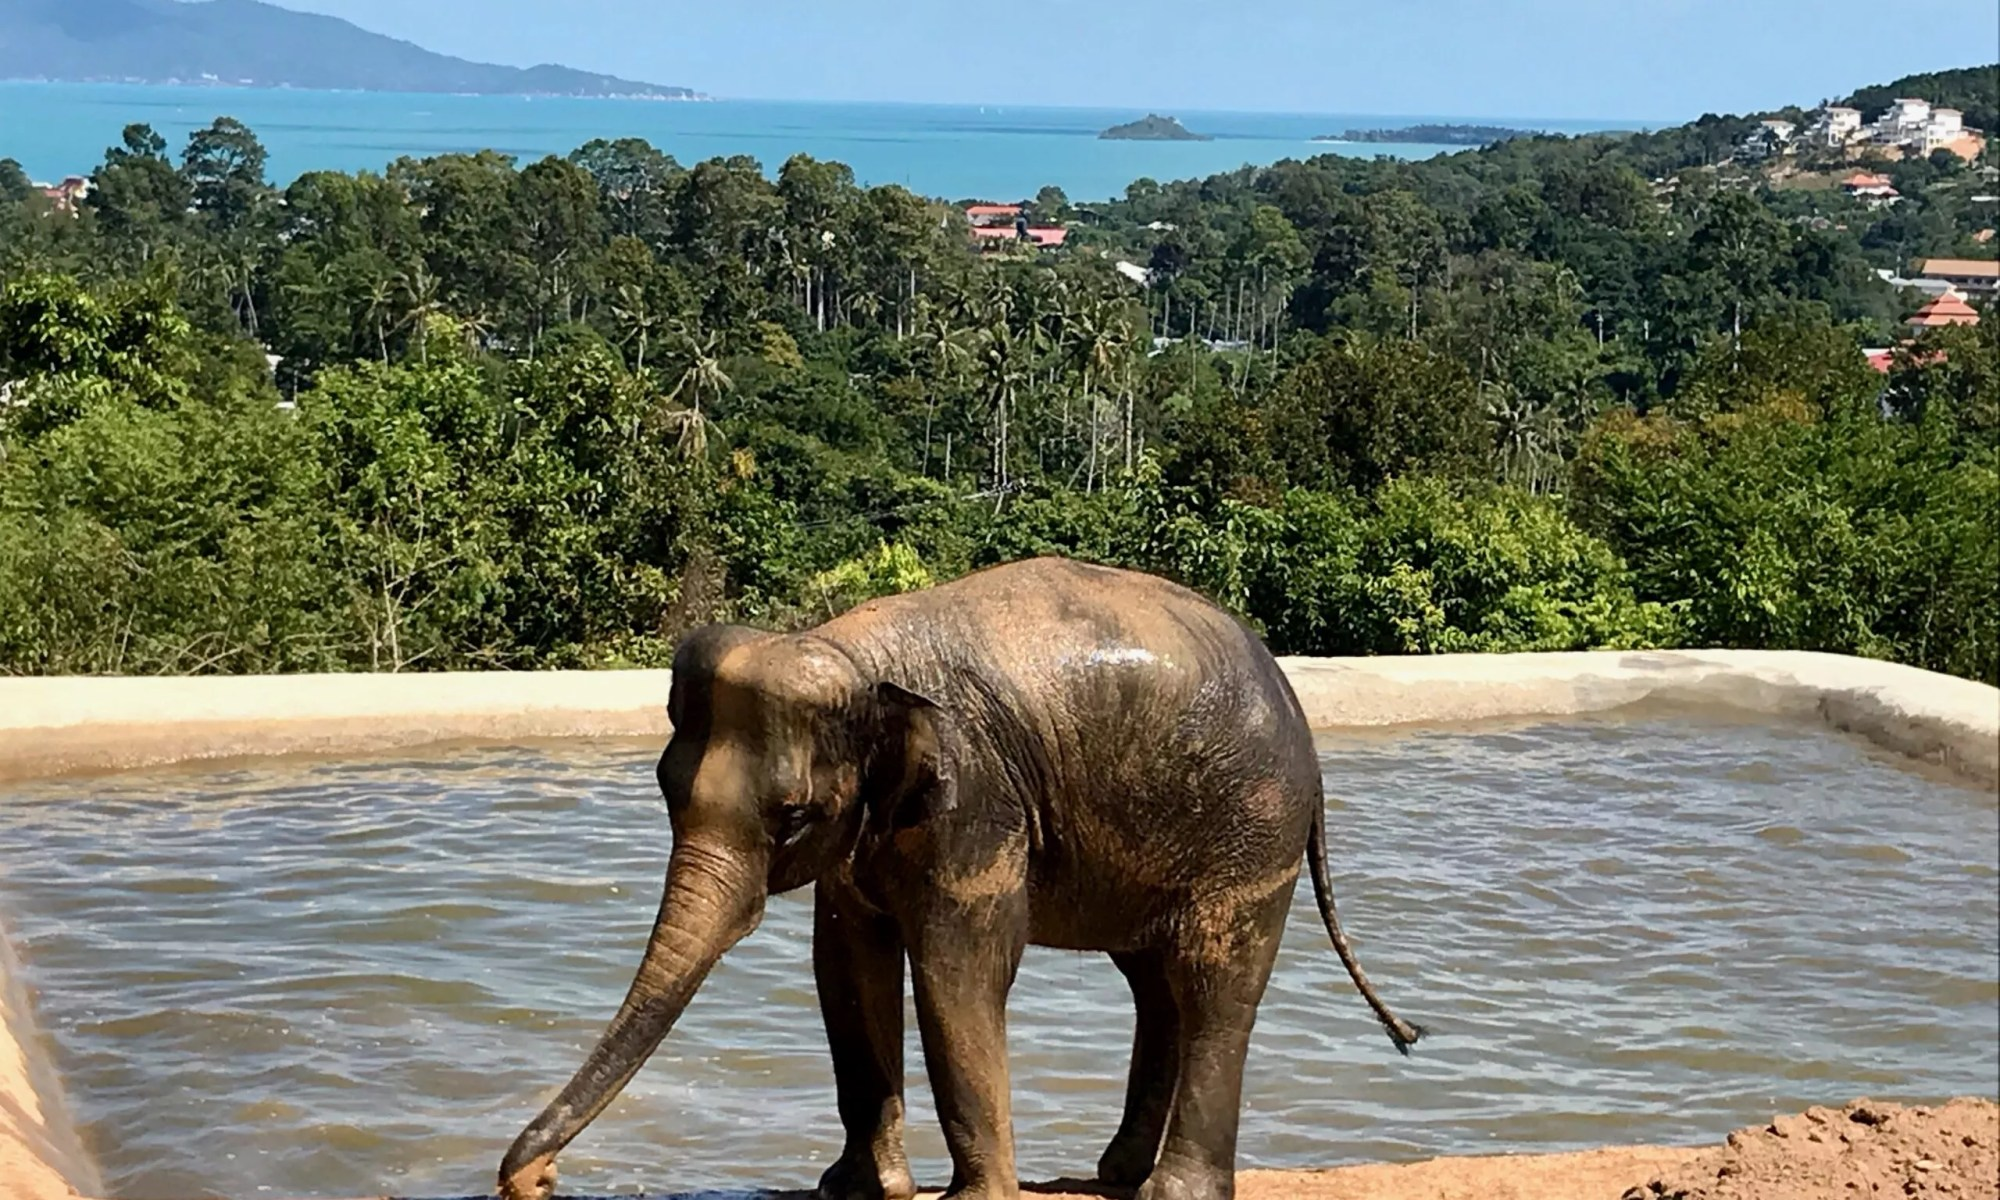 Samui Elephant Haven, You Can Pet the Elephants at the Samui Elephant Haven